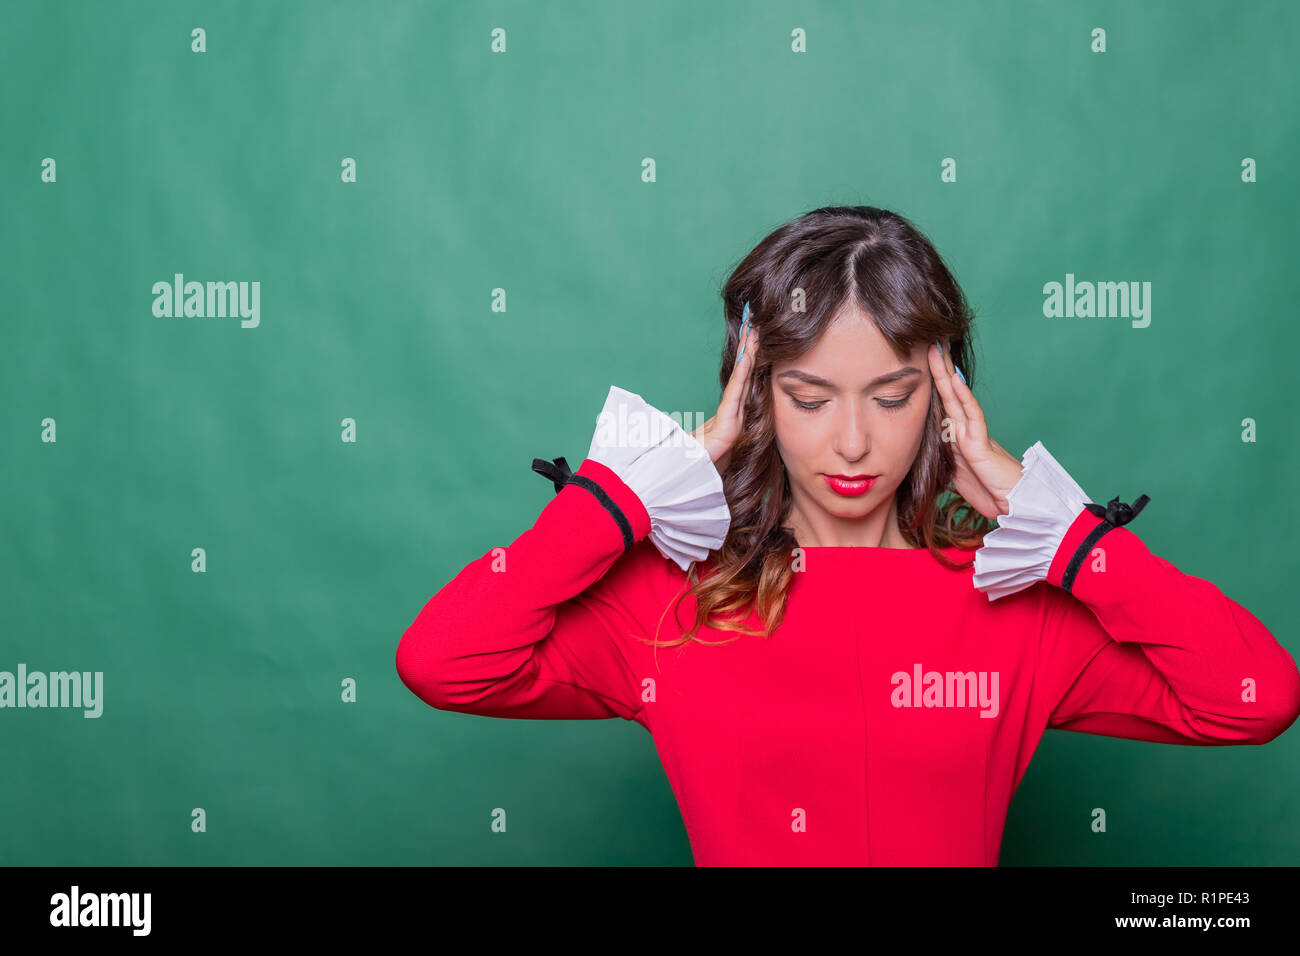 Business woman having a head pain. Stress and depression.Health And Pain. Stressed Exhausted Young Woman Having Strong Tension Headache. Portrait Of Beautiful Sick Girl Suffering From Head Migraine, Feeling Pressure in job.Copy space - Stock Image